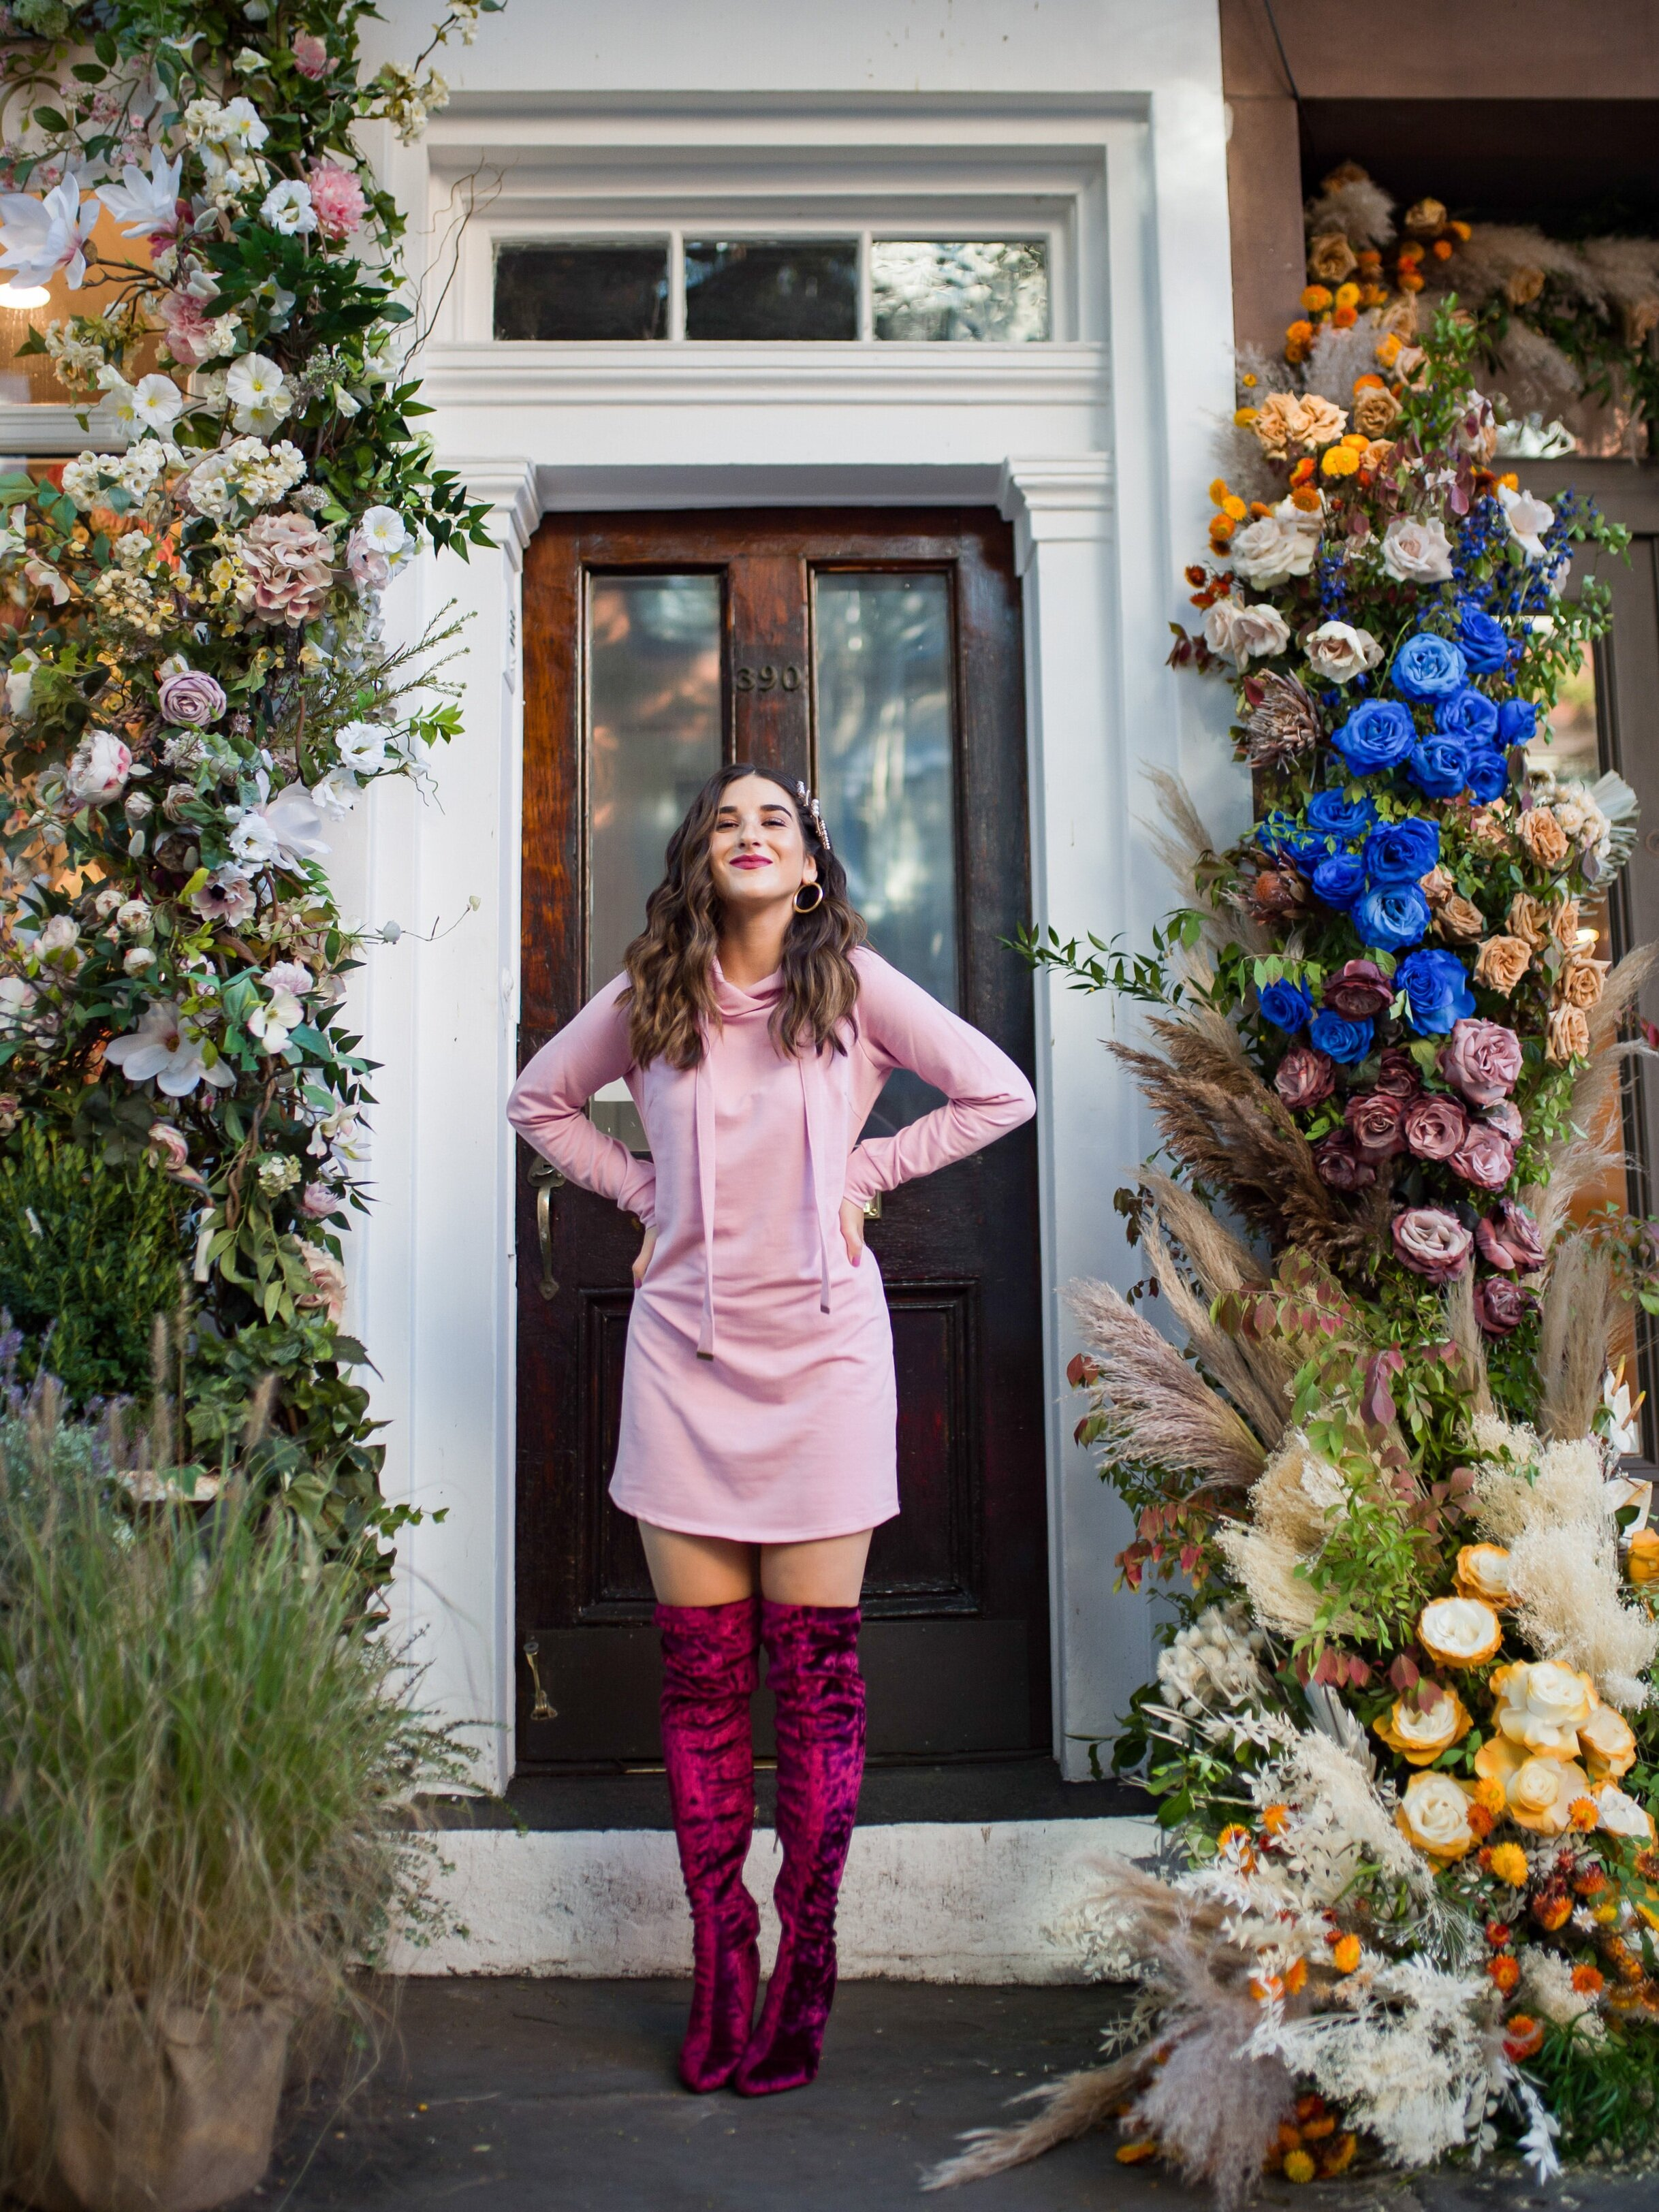 Pink Sweatshirt Dress Velvet OTK Boots Walmart Fashion Esther Santer Fashion Blog NYC Street Style Blogger Outfit OOTD Trendy Shopping Girl What How To Wear Hair Accessories Jewel Clips Fall Winter Styling Maroon Shoes Floral Backdrop Steal Affordable.jpg